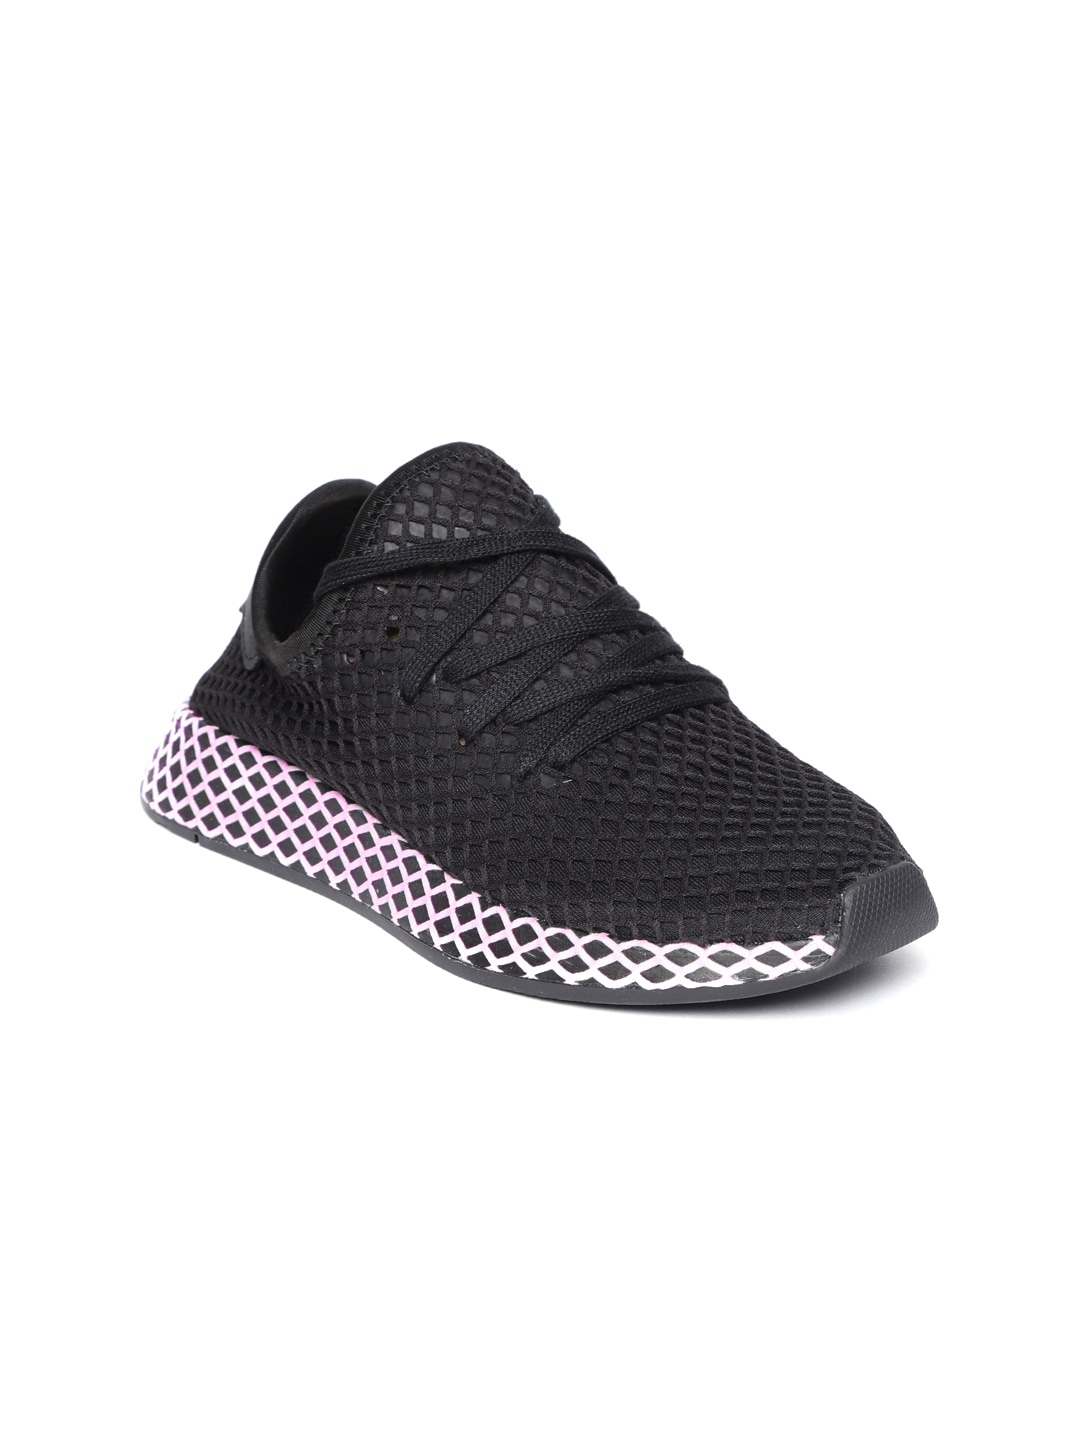 8e092da0b3f Adidas Deerupt - Buy Adidas Deerupt online in India